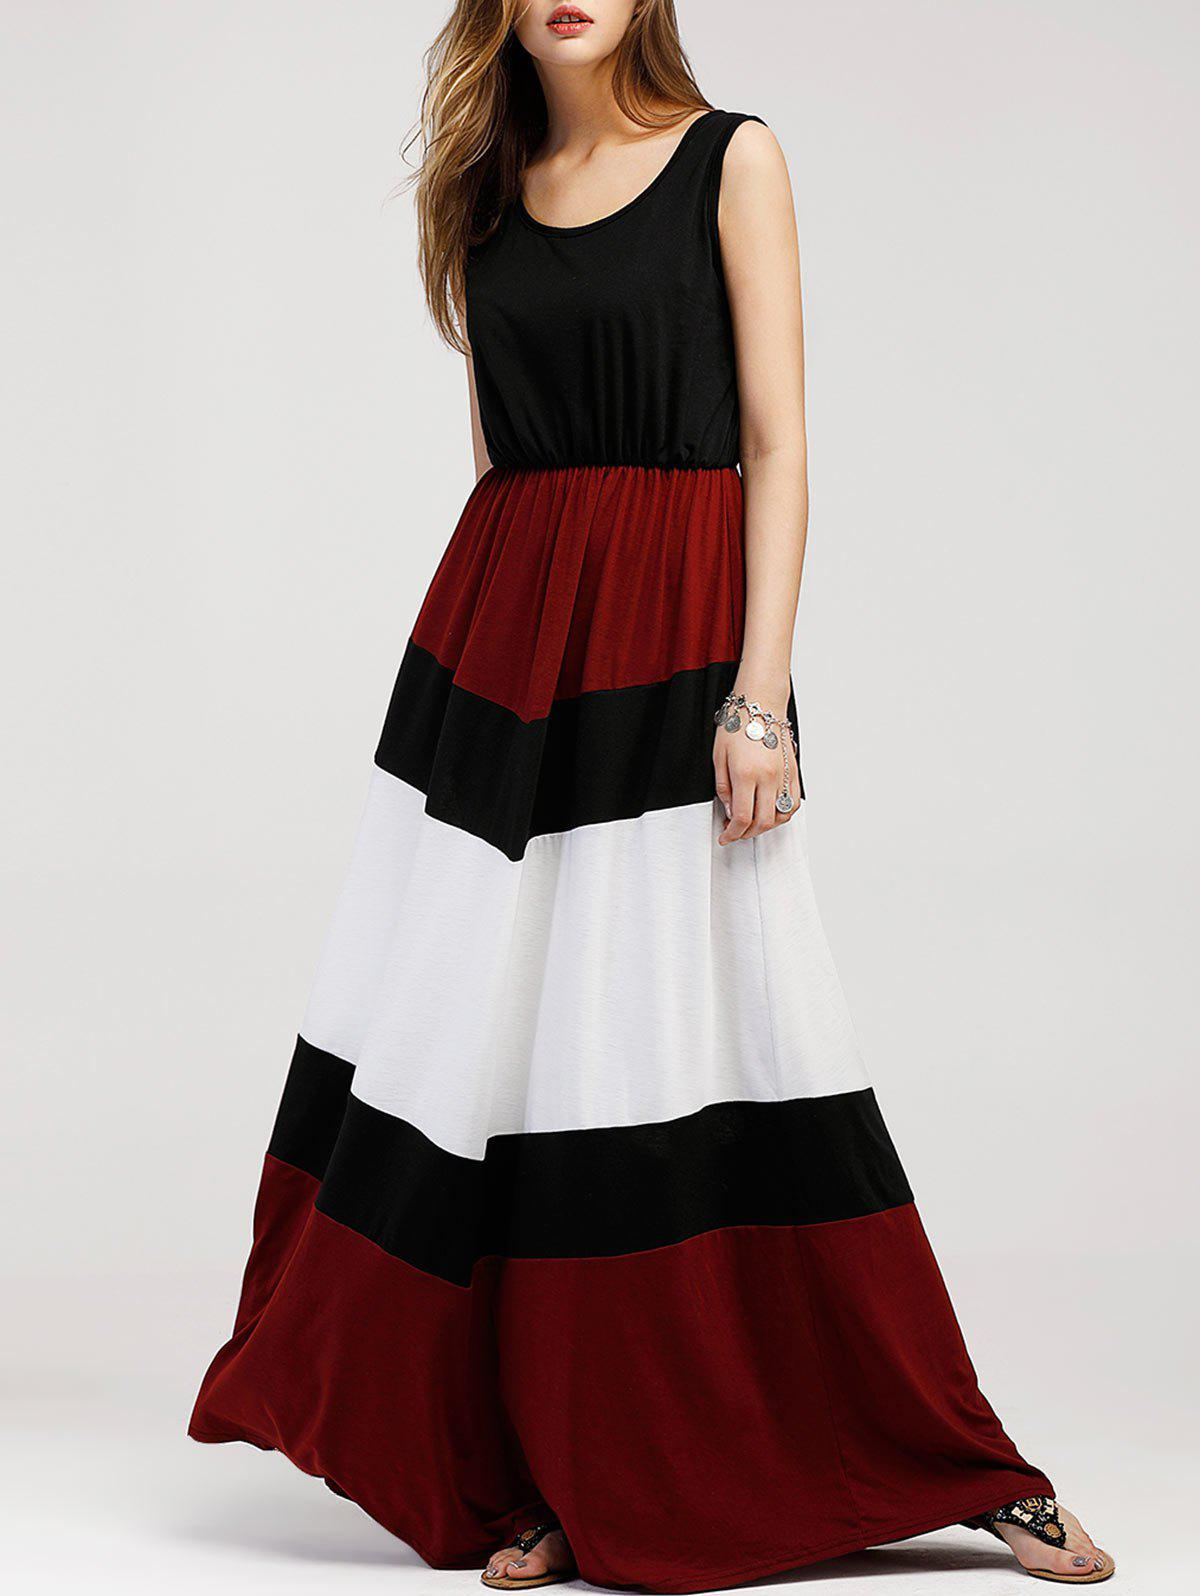 Hot Color Contrast Sleeveless Maxi Dress